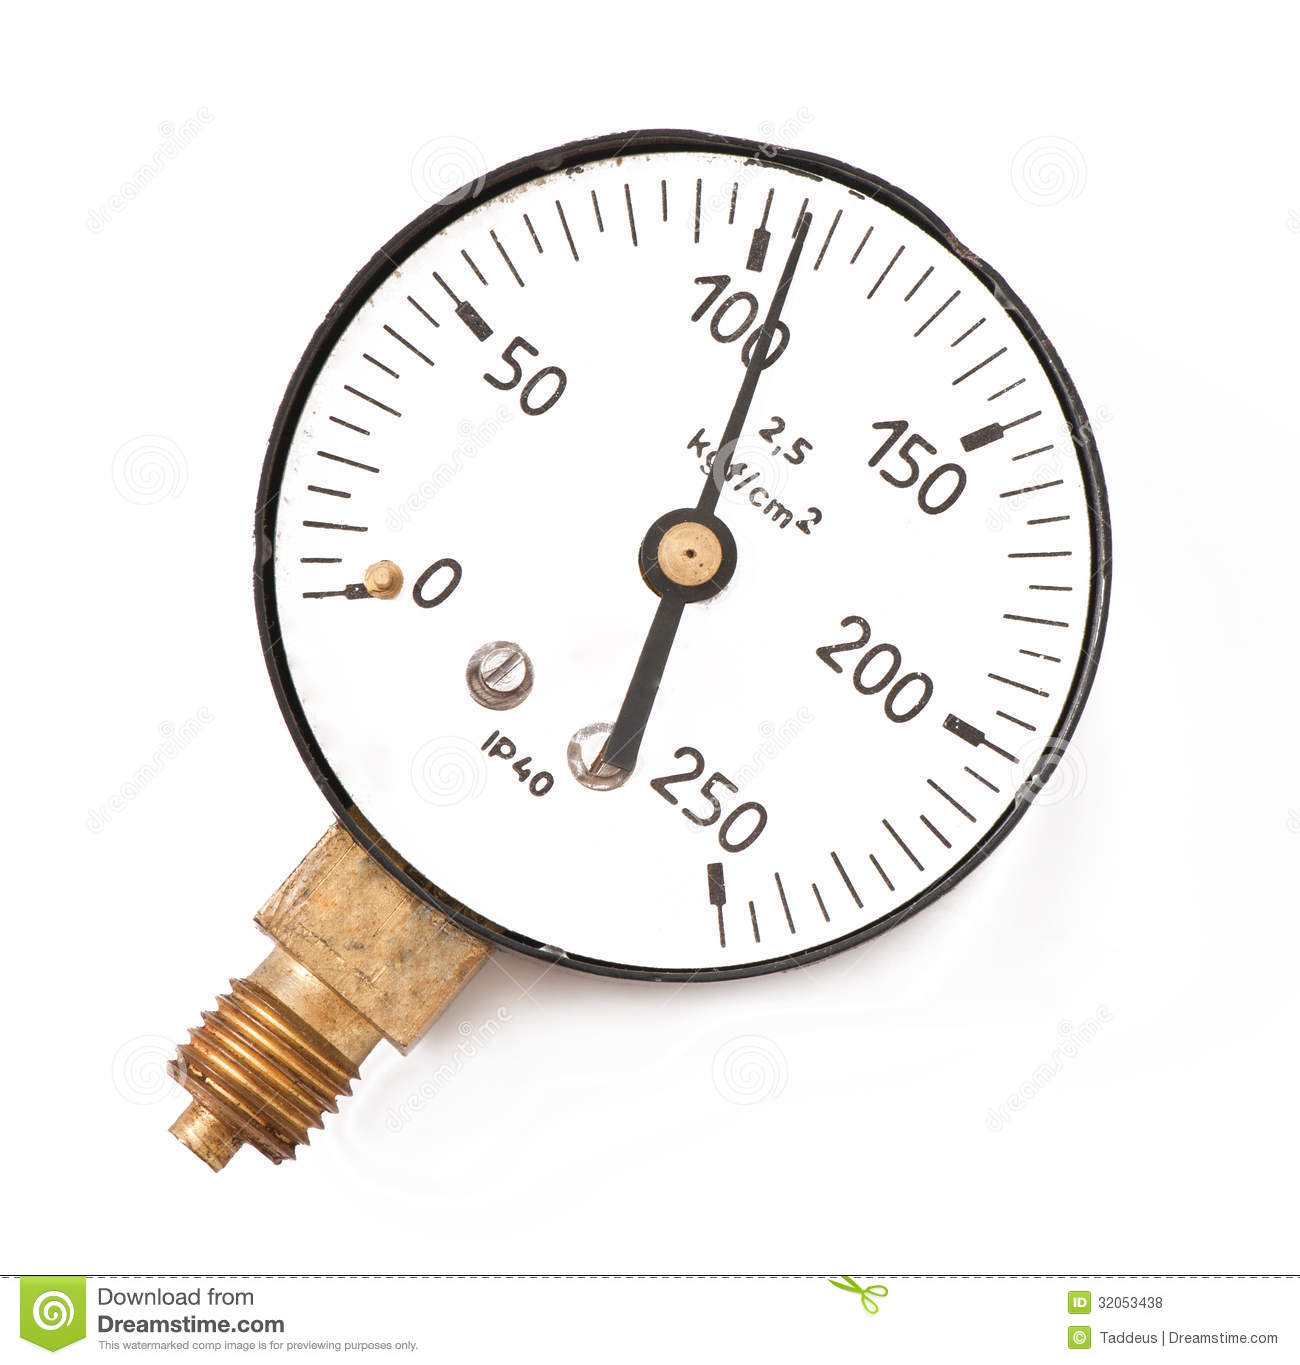 Pressure Measuring Instruments : Pressure measuring instrument royalty free stock photos